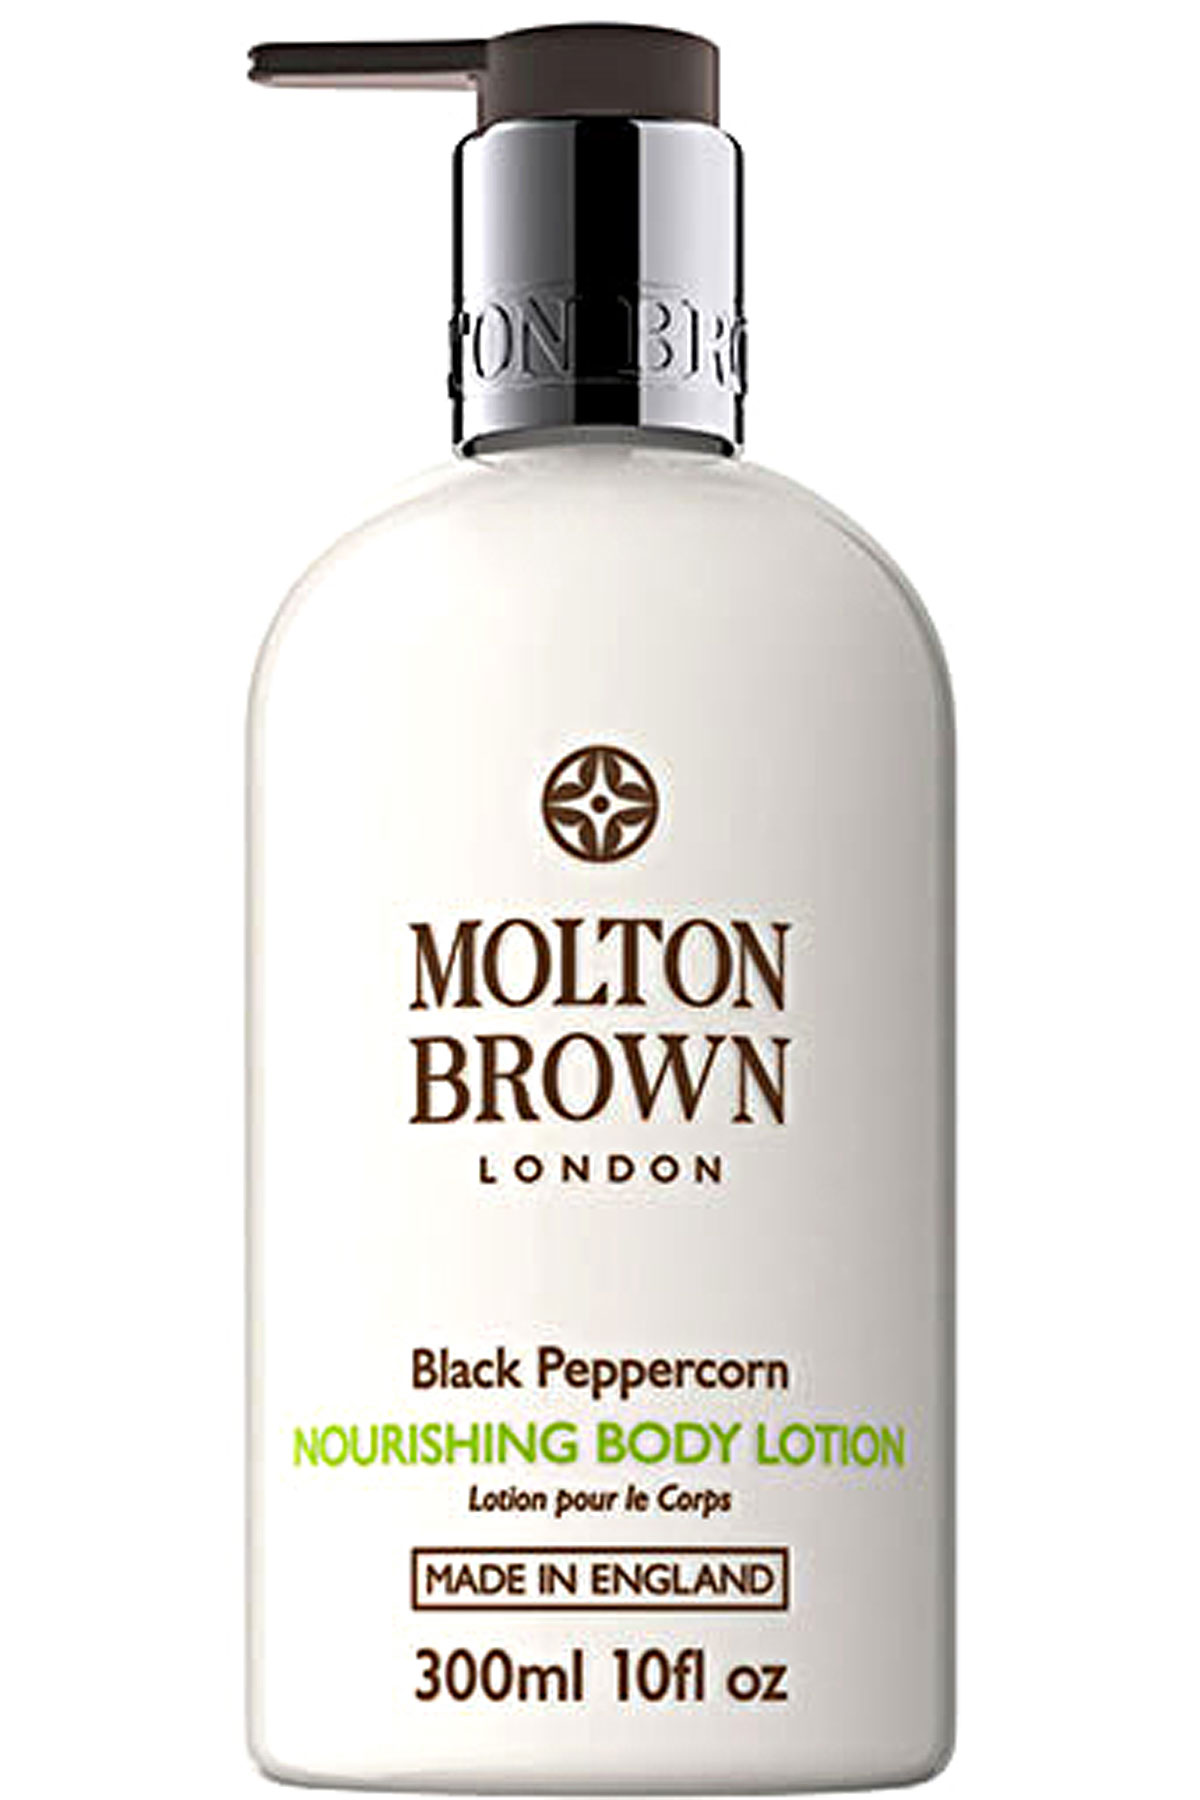 Molton Brown Beauty for Men, Black Peppercorn - Body Lotion - 300 Ml, 2019, 300 ml